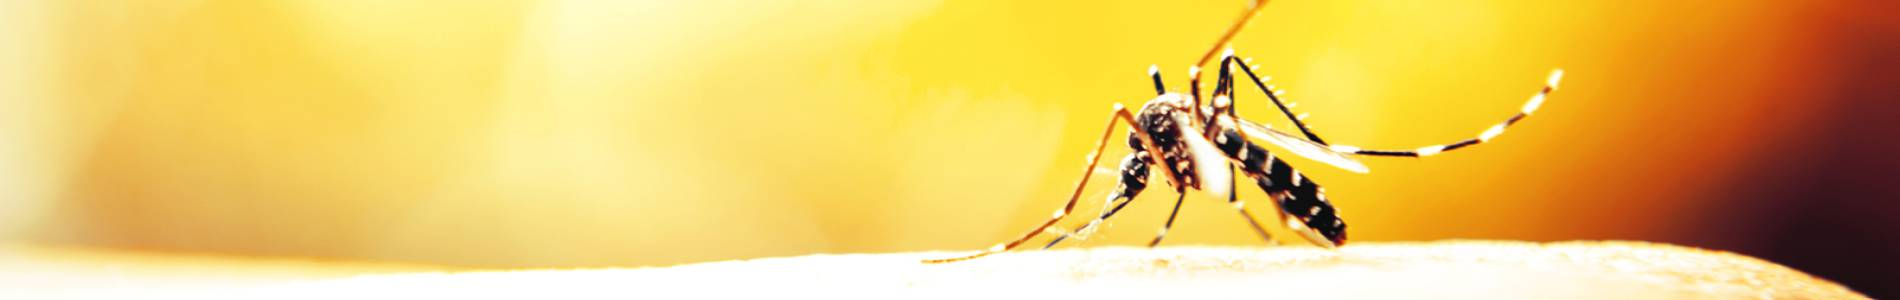 Pest Maintenance Home Page Banner